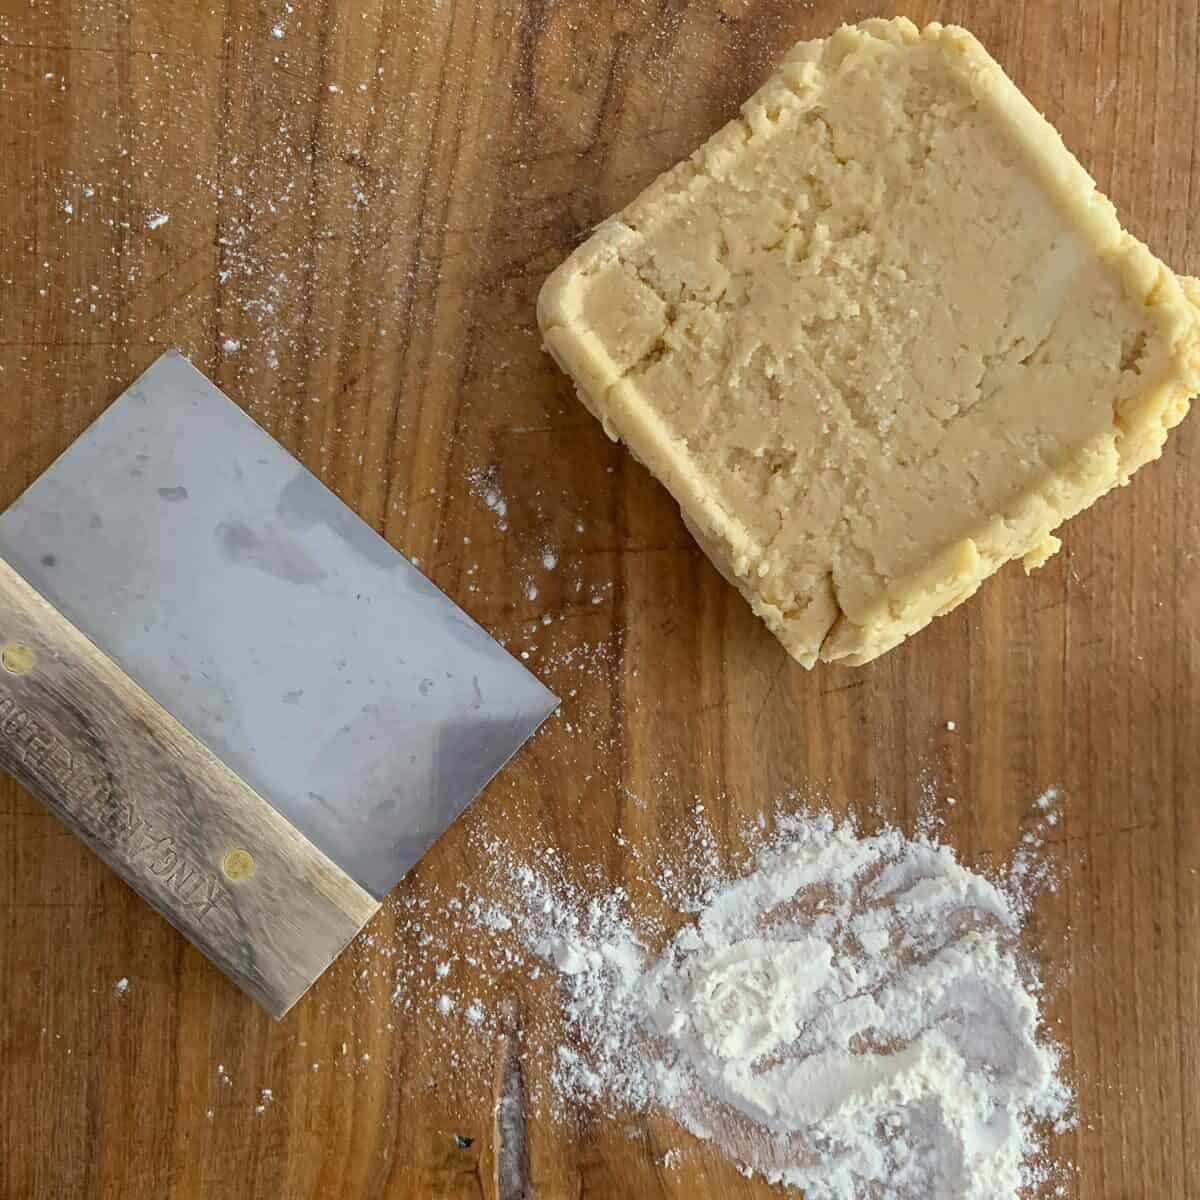 cookie dough after refrigerating on wooden board with flour and bench knife